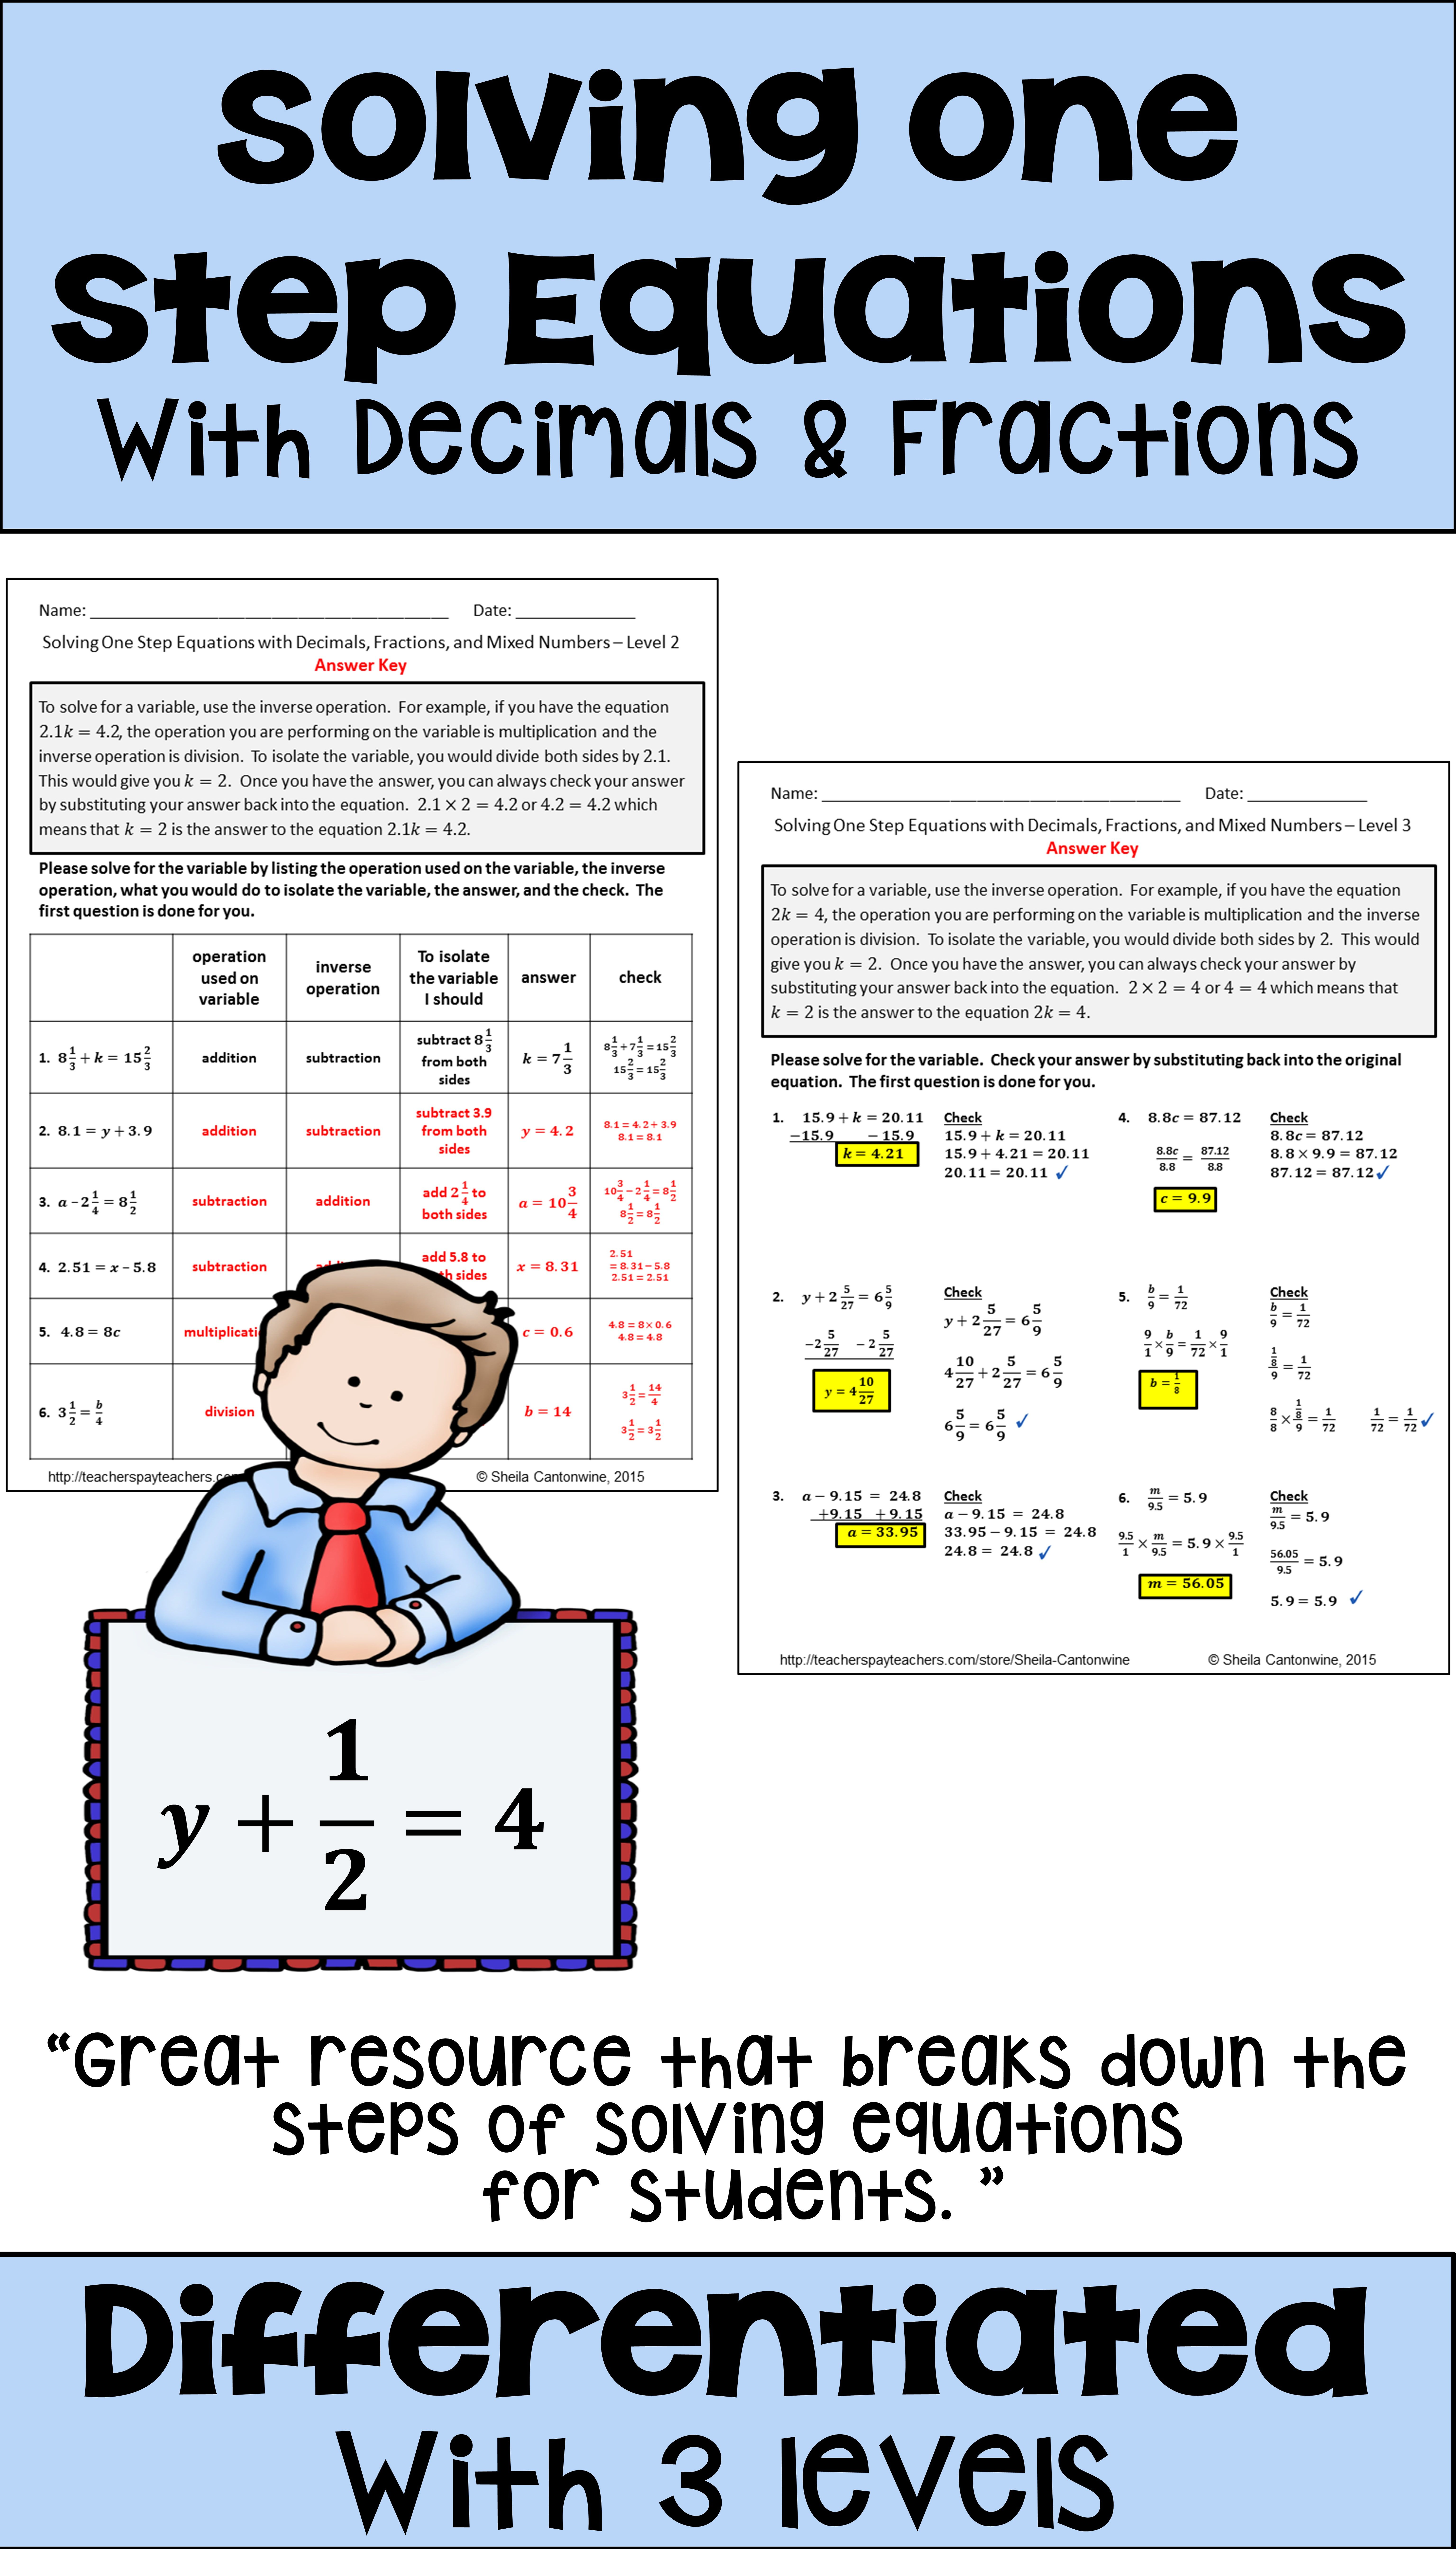 Solving One Step Equations With Fractions And Decimals